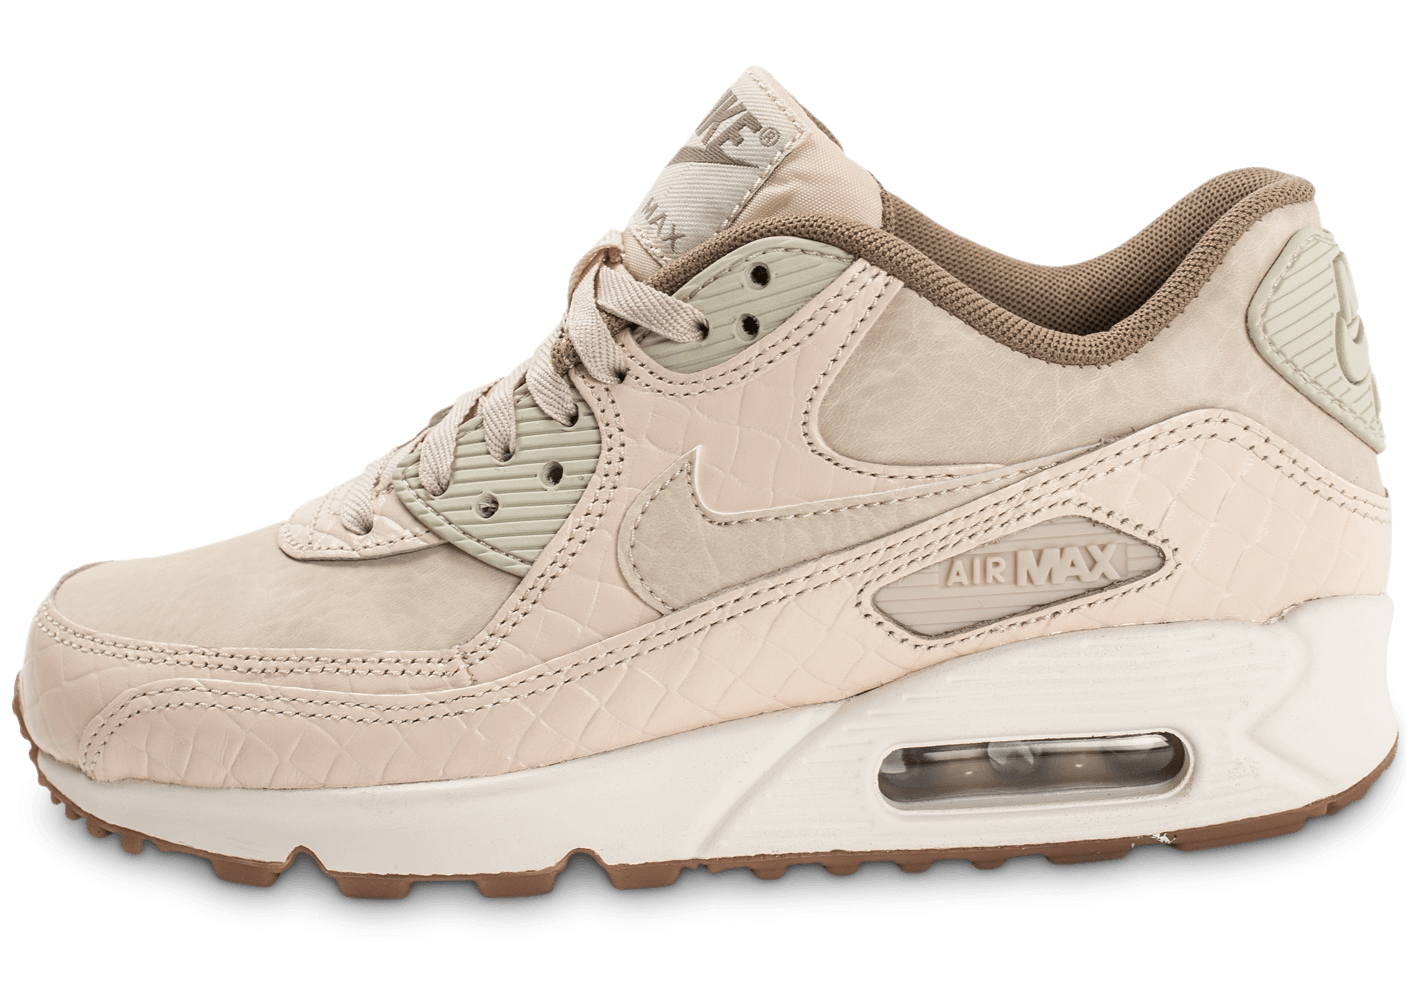 sneakers for cheap b361b 1d4a5 ... free shipping nike air max 90 premium beige chaussures air baskets  femme chausport 73ce2b 707d1 75fdc ...